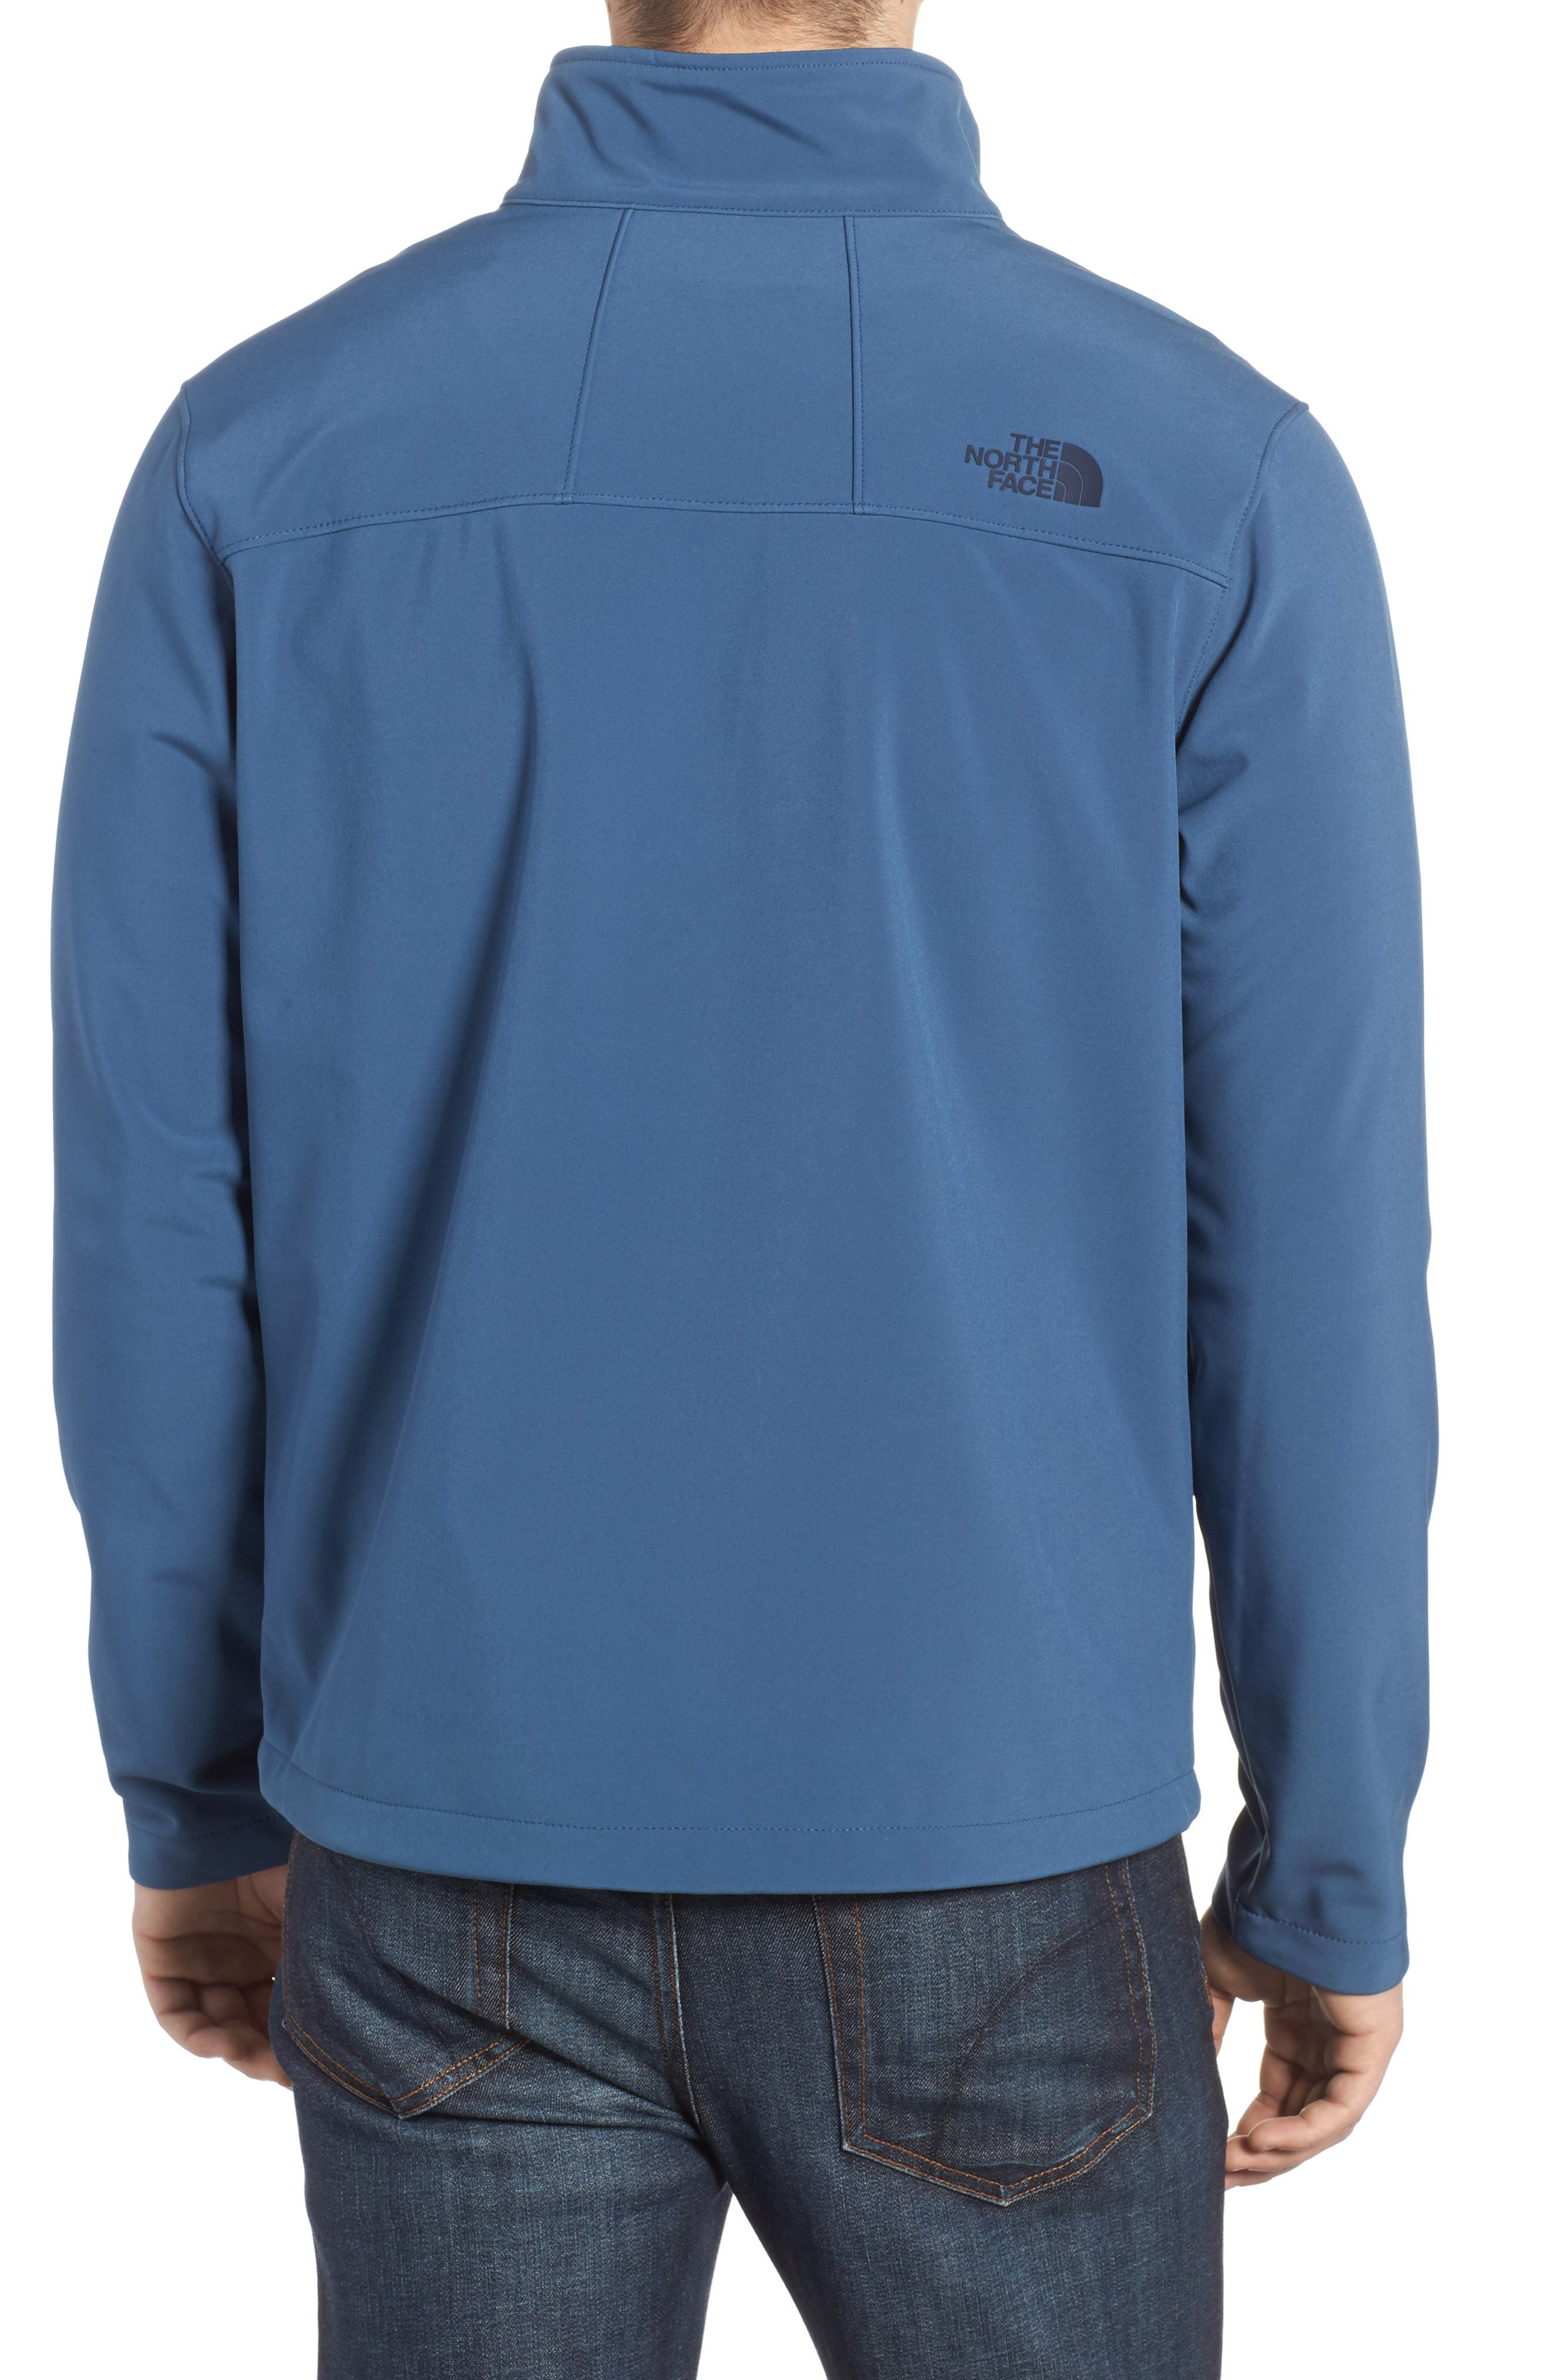 Alternate Image 2  - The North Face 'Apex Bionic 2' Windproof & Water Resistant Soft Shell Jacket